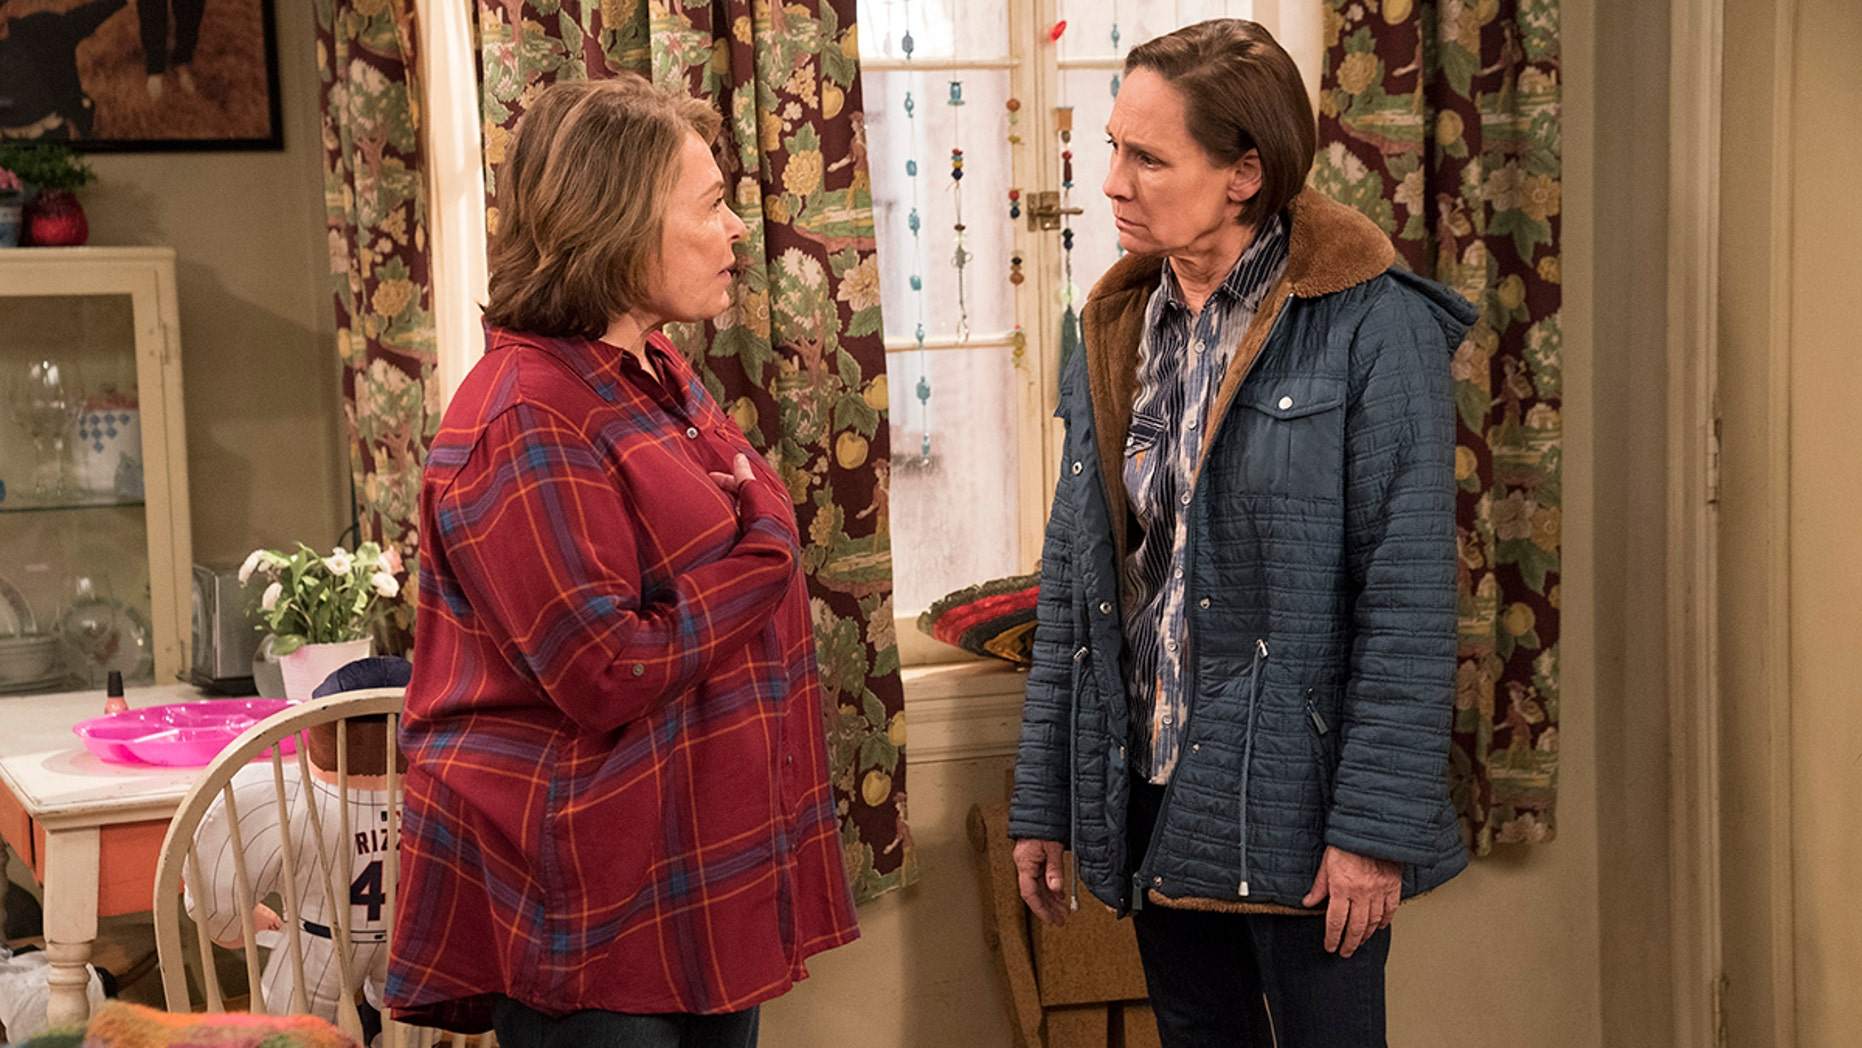 """ROSEANNE - """"No Country for Old Women"""" - After Beverly gets kicked out of the nursing home, Roseanne and Jackie fight over who will take care of their mother. Meanwhile, Mark's creative touch with building a birdhouse for Dan's customer is more than Dan can handle, but Darlene defends her son, on the sixth episode of the revival of """"Roseanne,"""" TUESDAY, MAY 1 (8:00-8:30 p.m. EDT), on The ABC Television Network. (ABC/Greg Gayne)ROSEANNE BARR, LAURIE METCALF"""